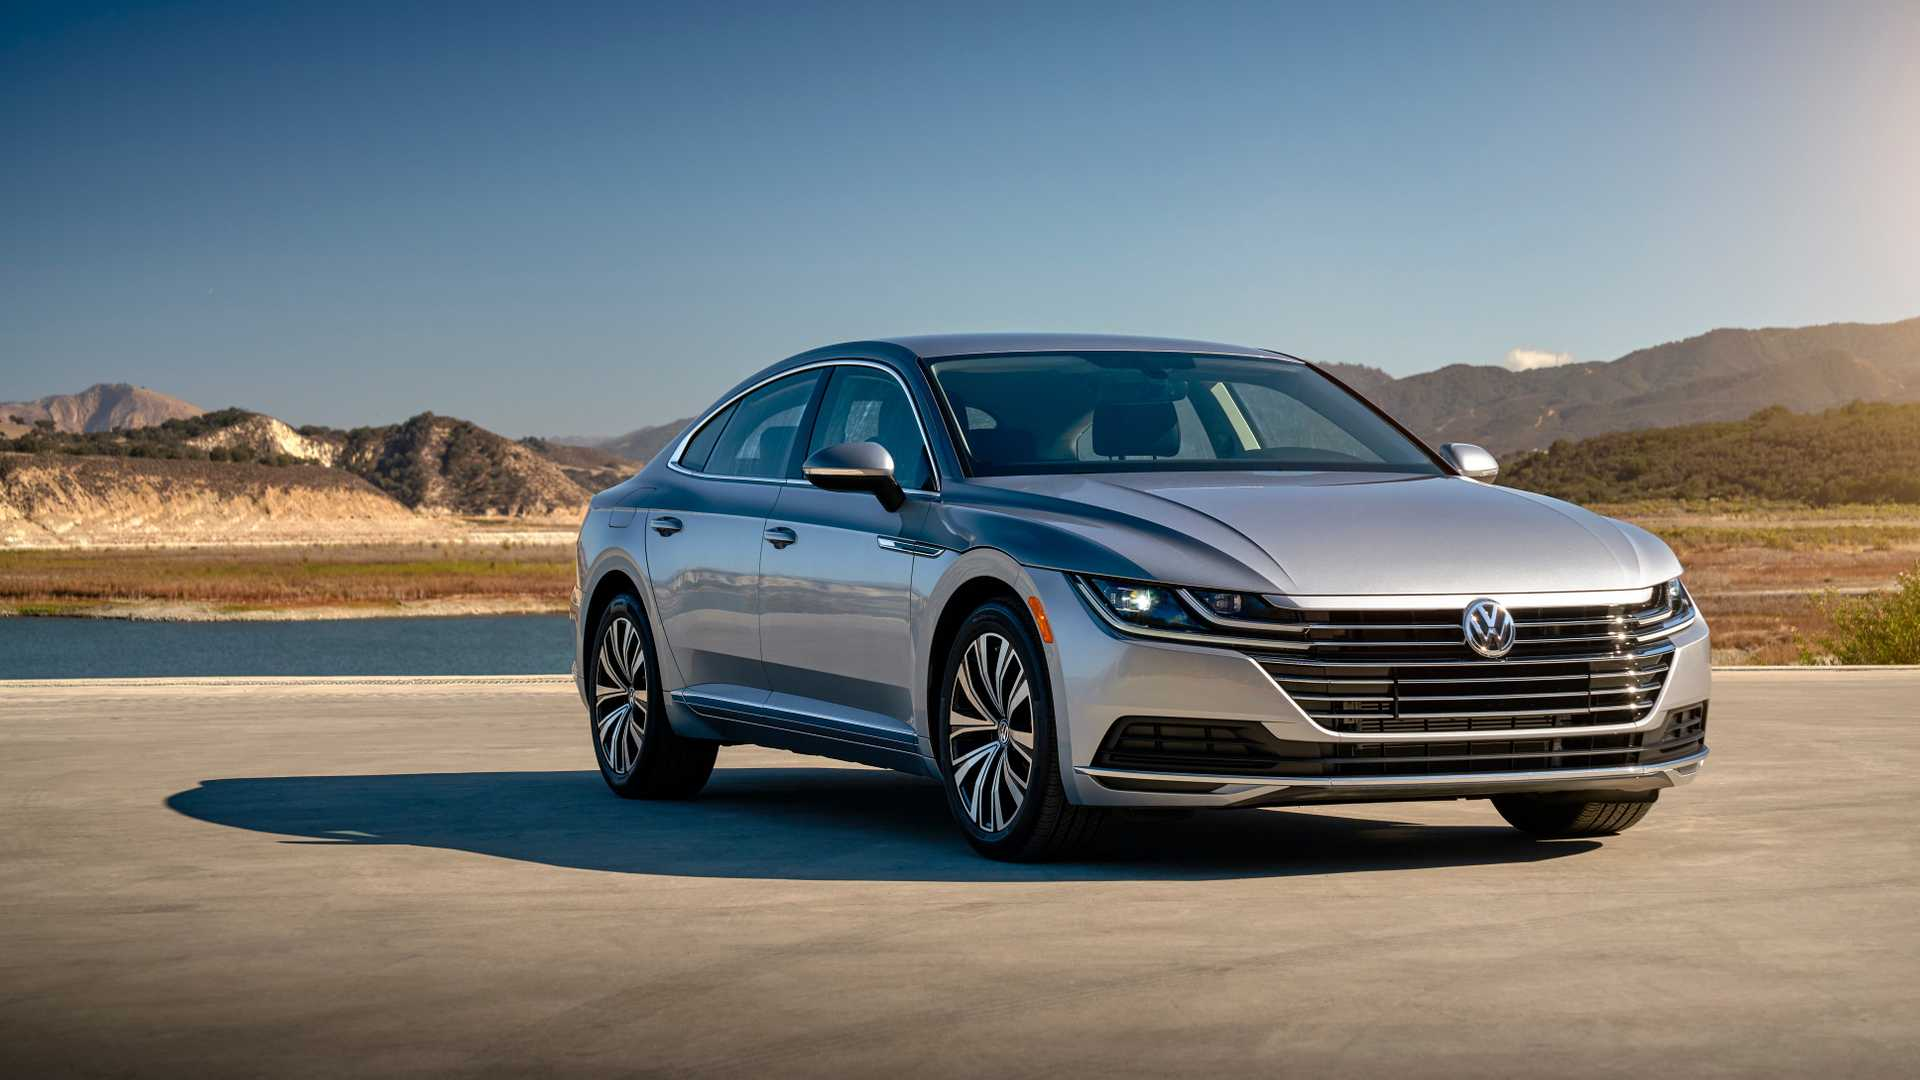 VW Arteon Usa >> 2019 Volkswagen Arteon 4motion First Drive Arty In The U S A